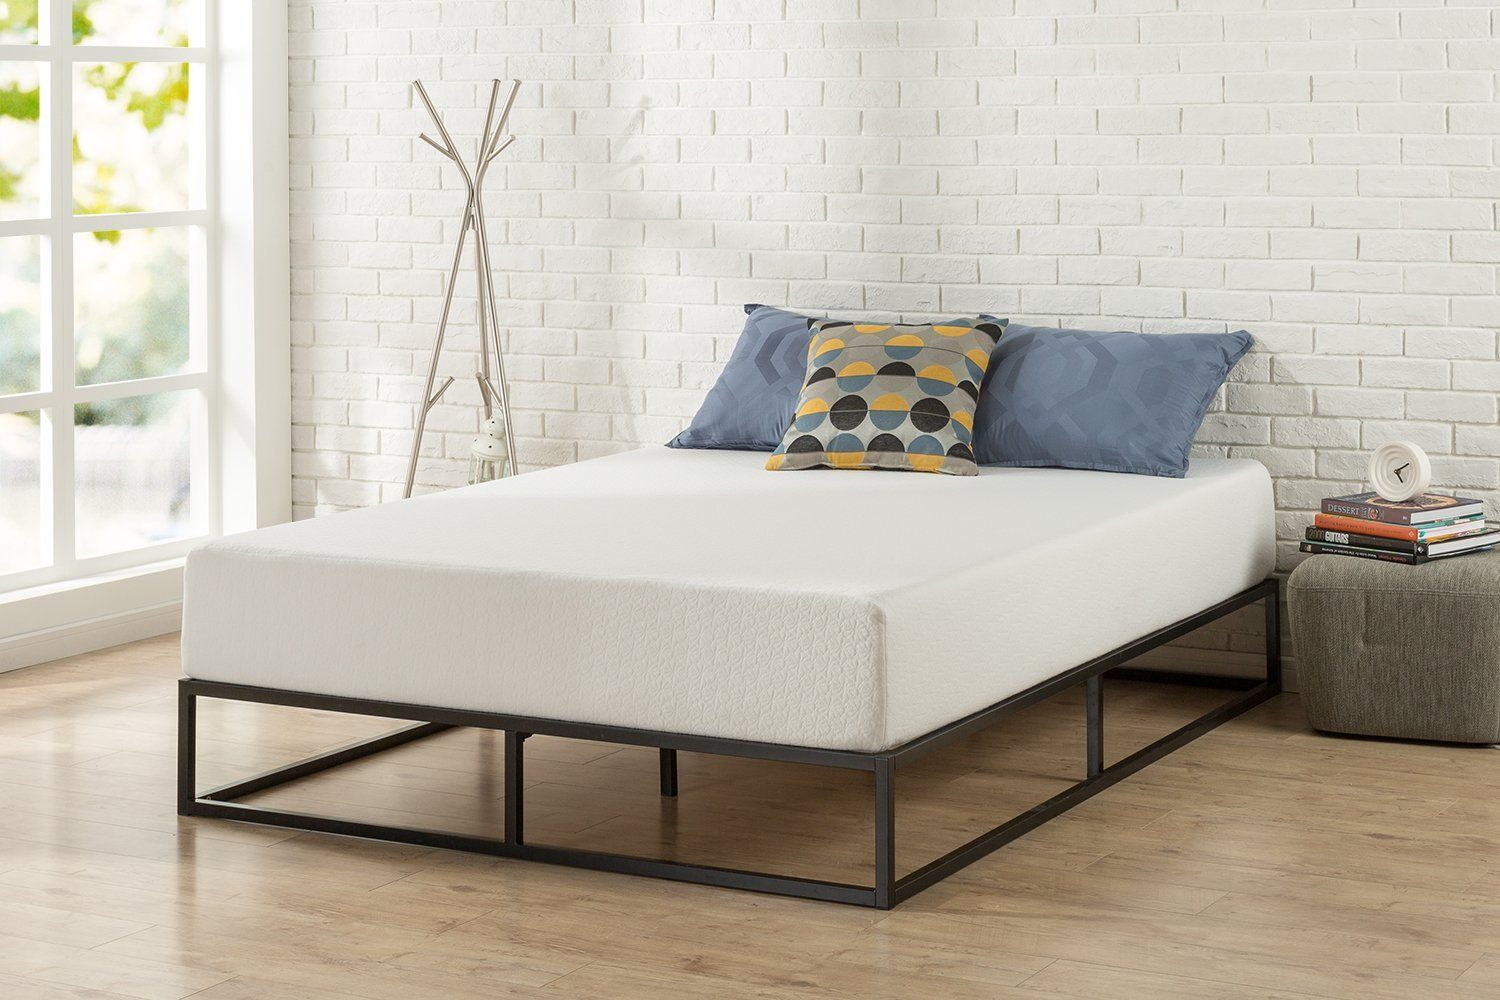 Zinus Modern Studio 10 Inch Platforma Low Profile Bed Frame Bed Frame Mattress Bed Frame Low Profile Bed Frame